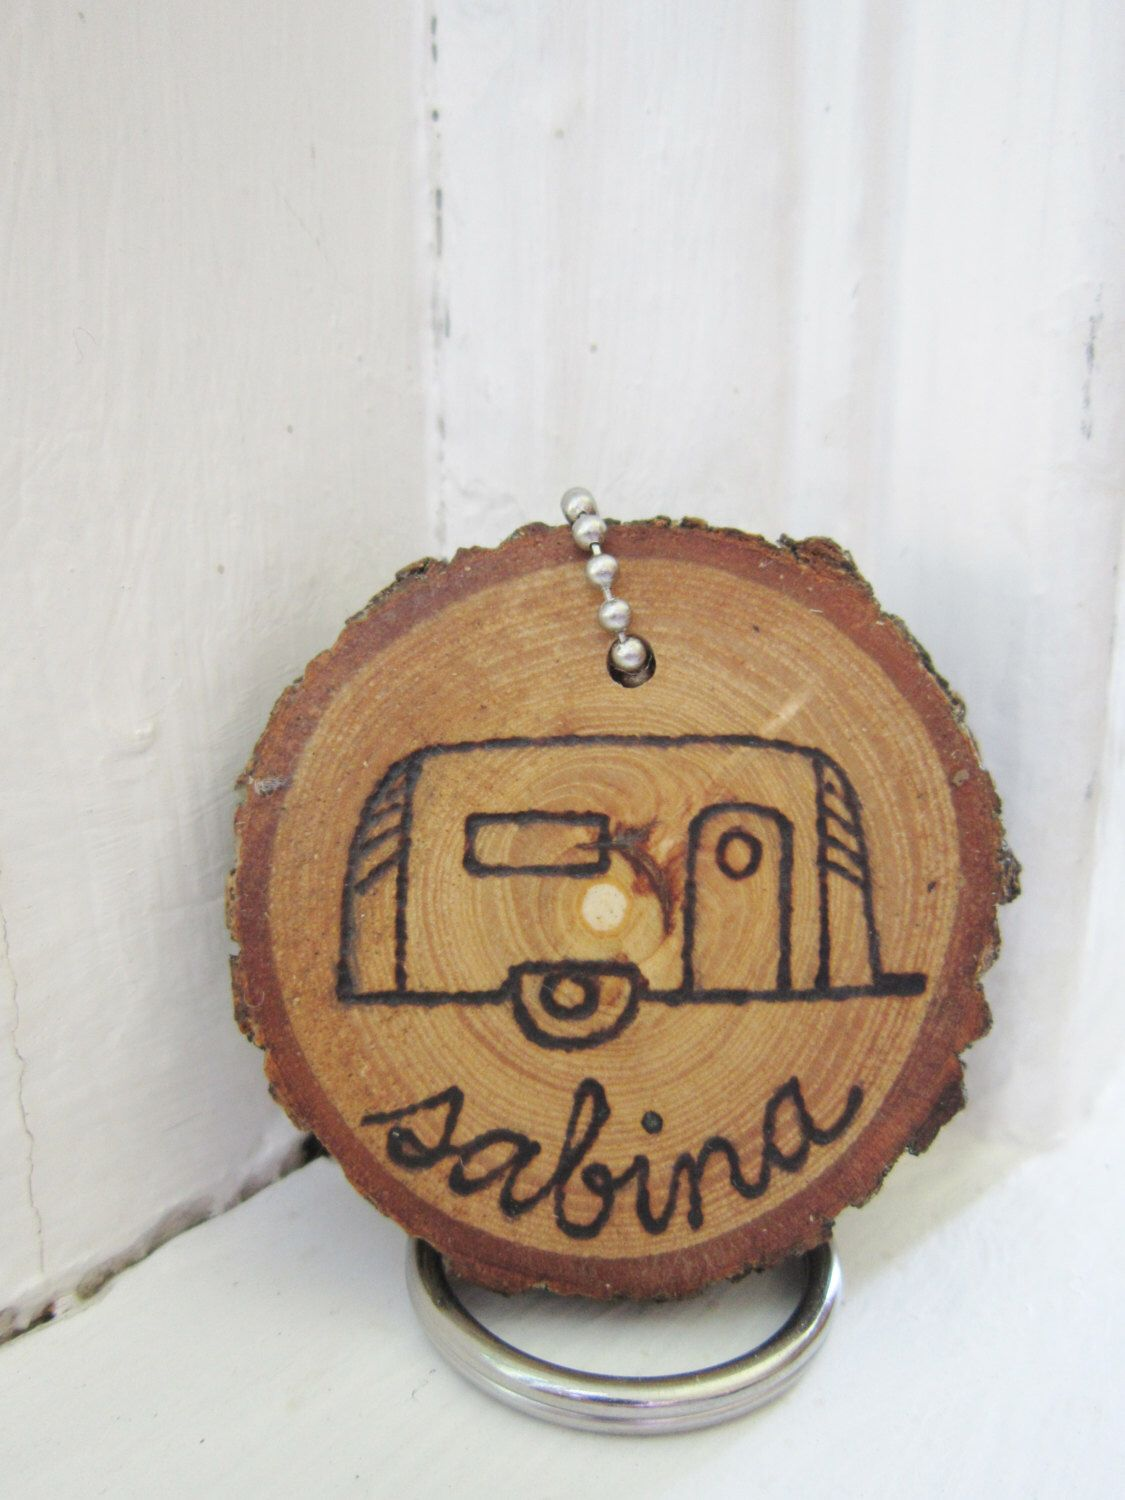 Vintage Travel Trailer Camper custom personalized key chain or ornament. Hand-burned on a wood slice-- Airstream Shasta Canned Ham Teardrop by averyrayne on Etsy https://www.etsy.com/listing/167399198/vintage-travel-trailer-camper-custom